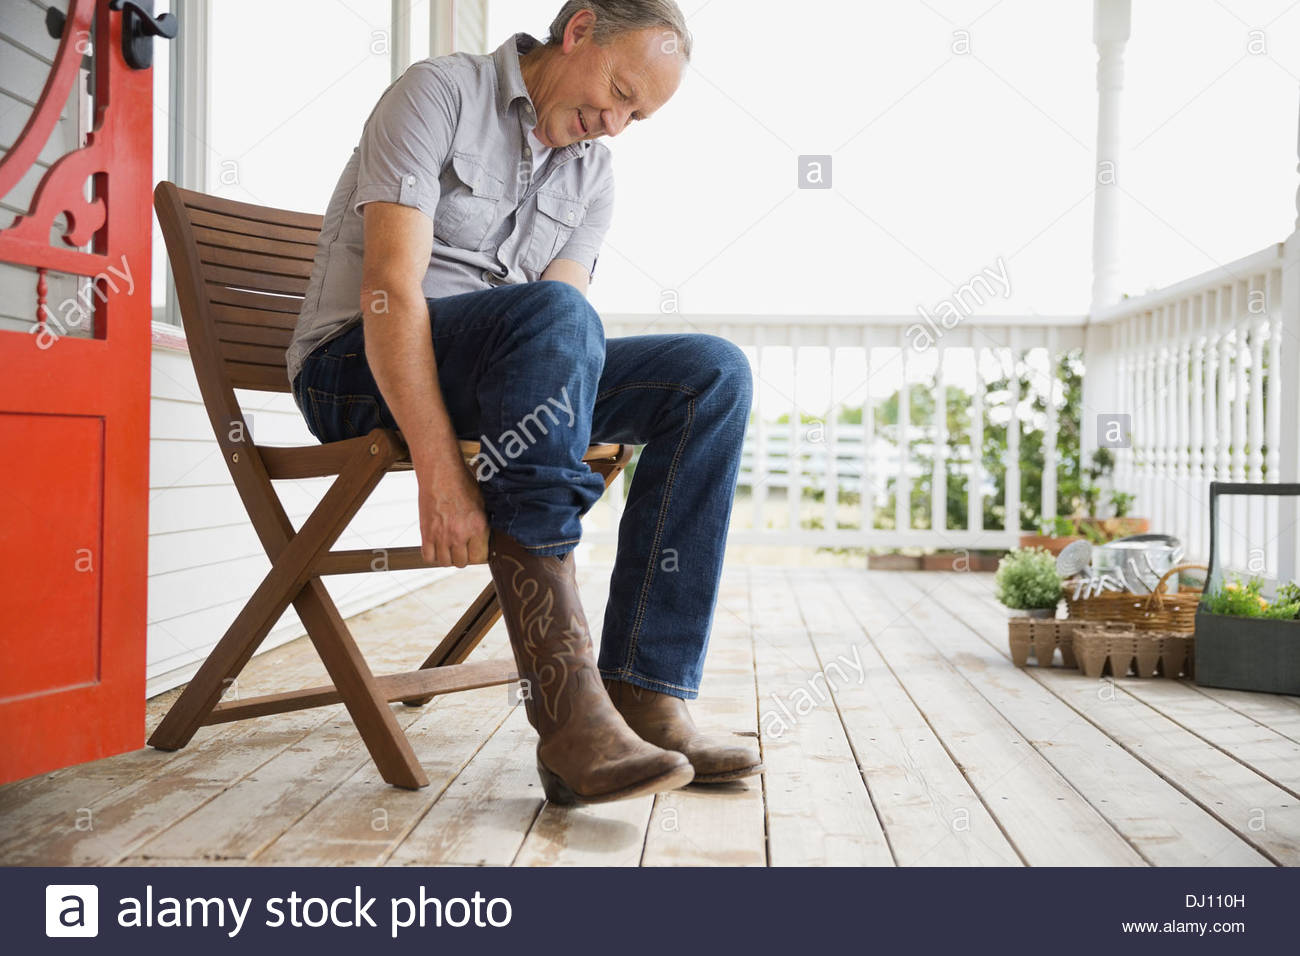 Man putting on cowboy boots - Stock Image